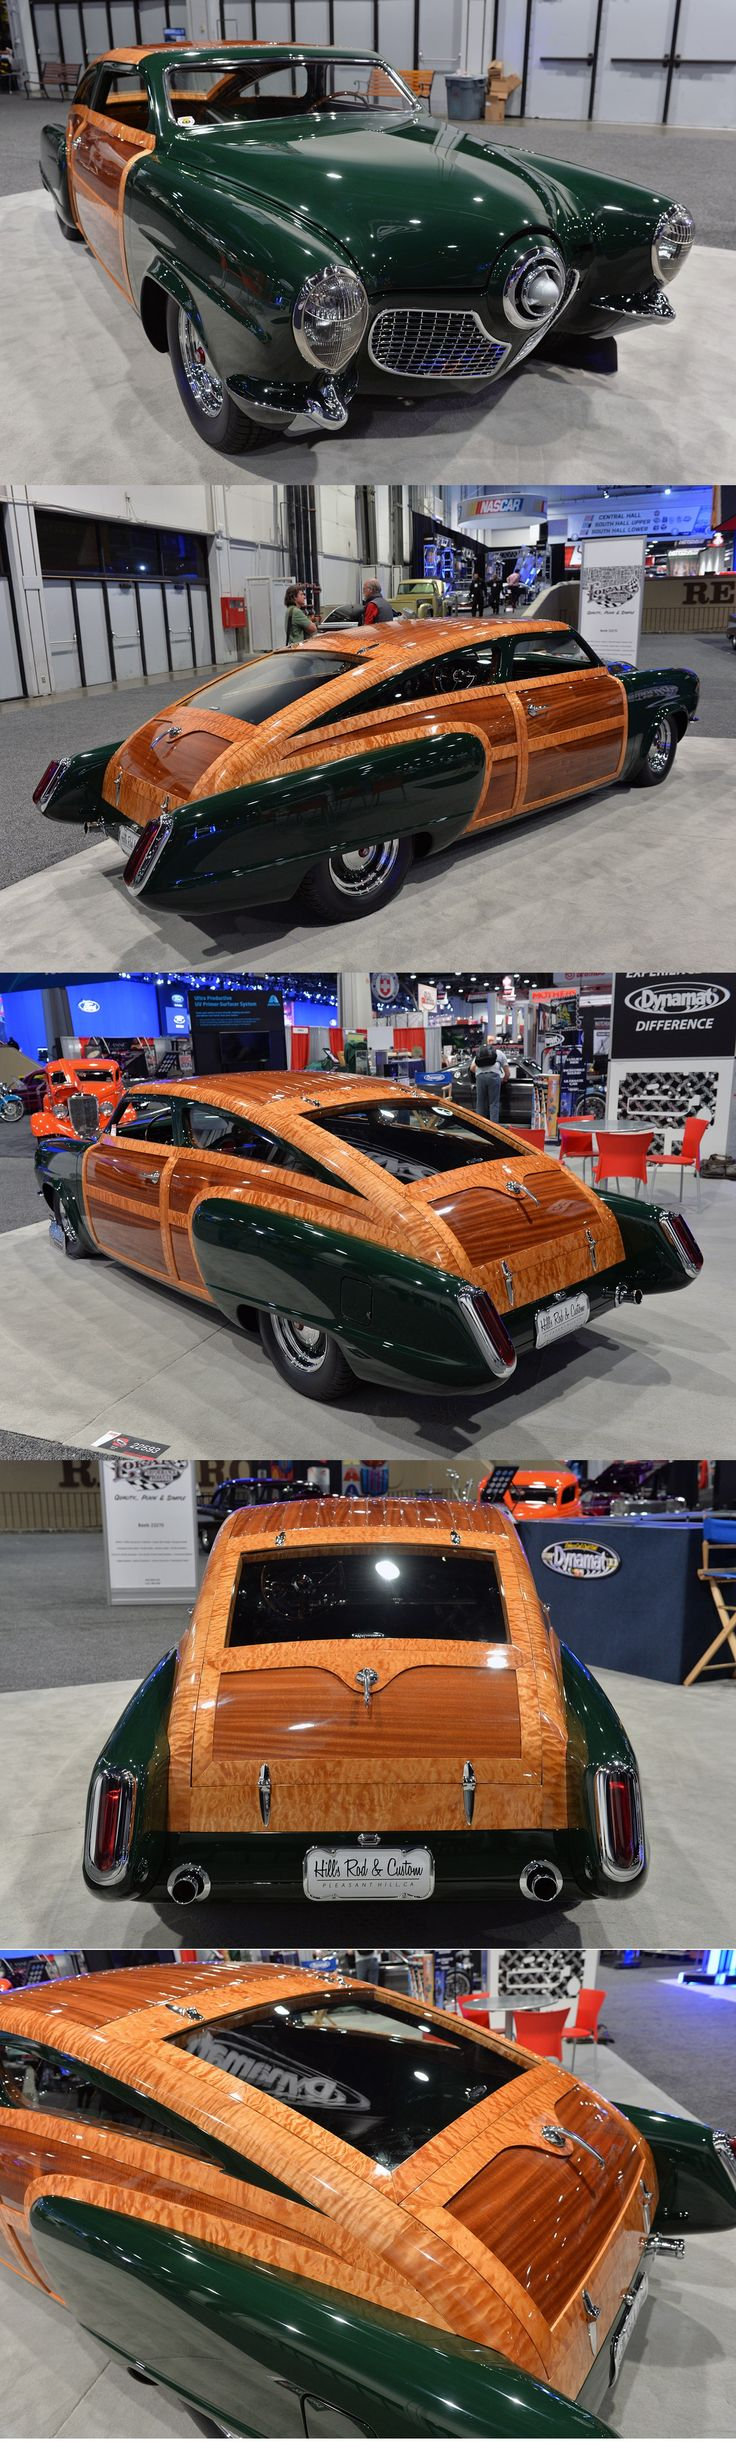 studebaker-woody-fastback... SealingsAndExpungements.com... 888-9-EXPUNGE (888-939-7864)... Free evaluations..low money down...Easy payments.. 'Seal past mistakes. Open new opportunities.'